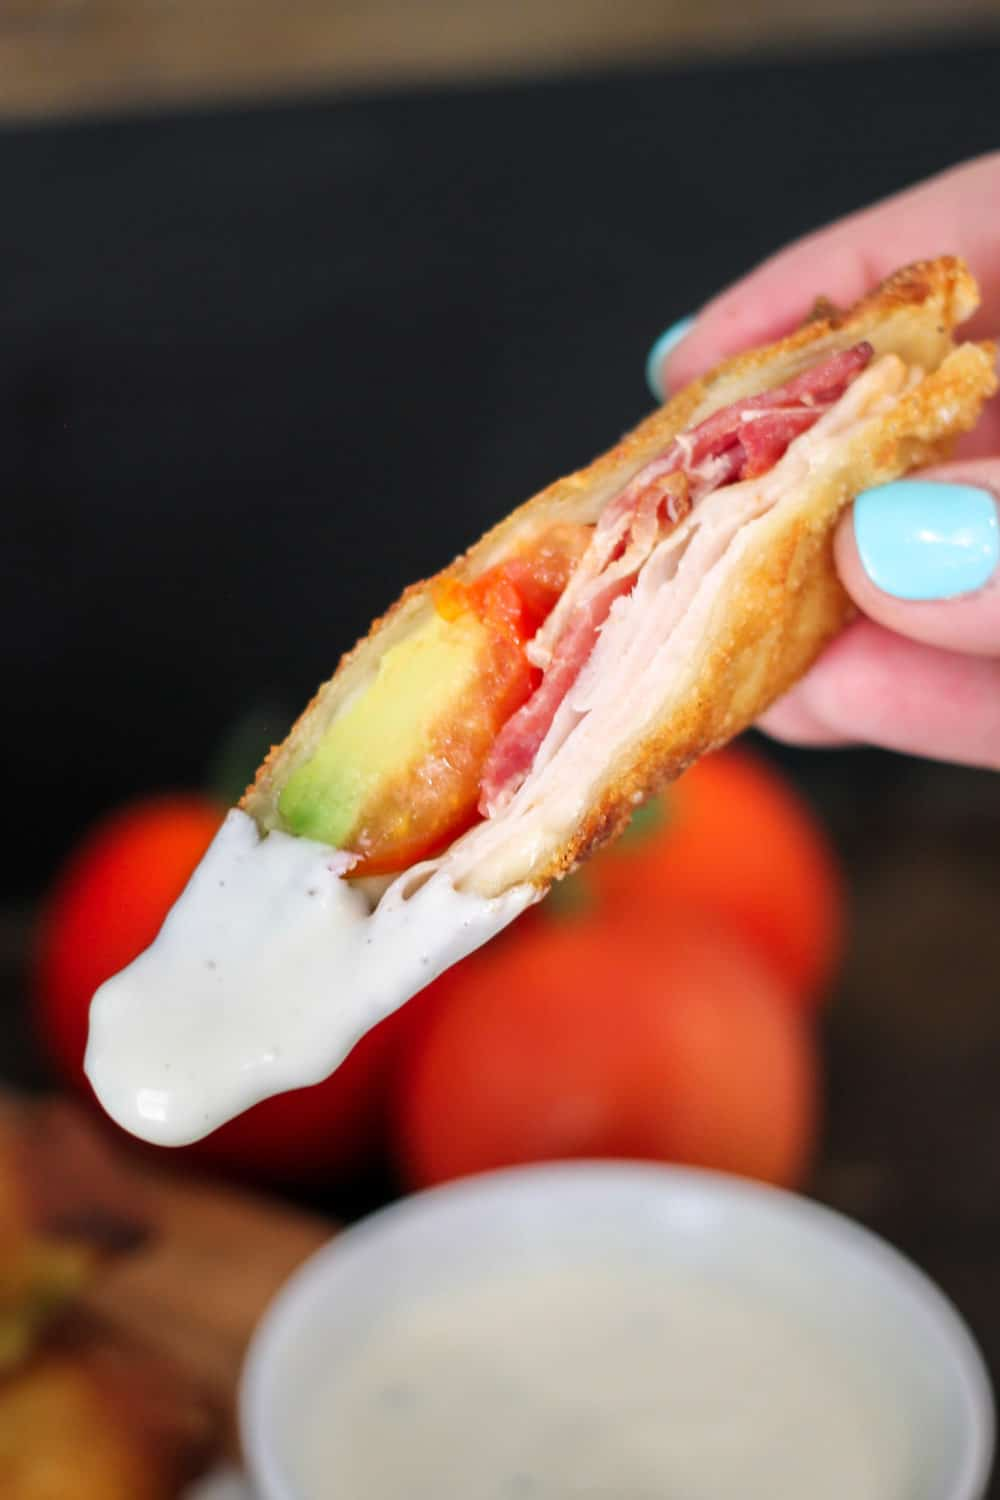 These crispy Turkey Club Egg Rolls are filled with turkey, bacon, tomato, avocado, cheese, and a special sauce! Deep fry them or make them healthier in the Air Fryer!